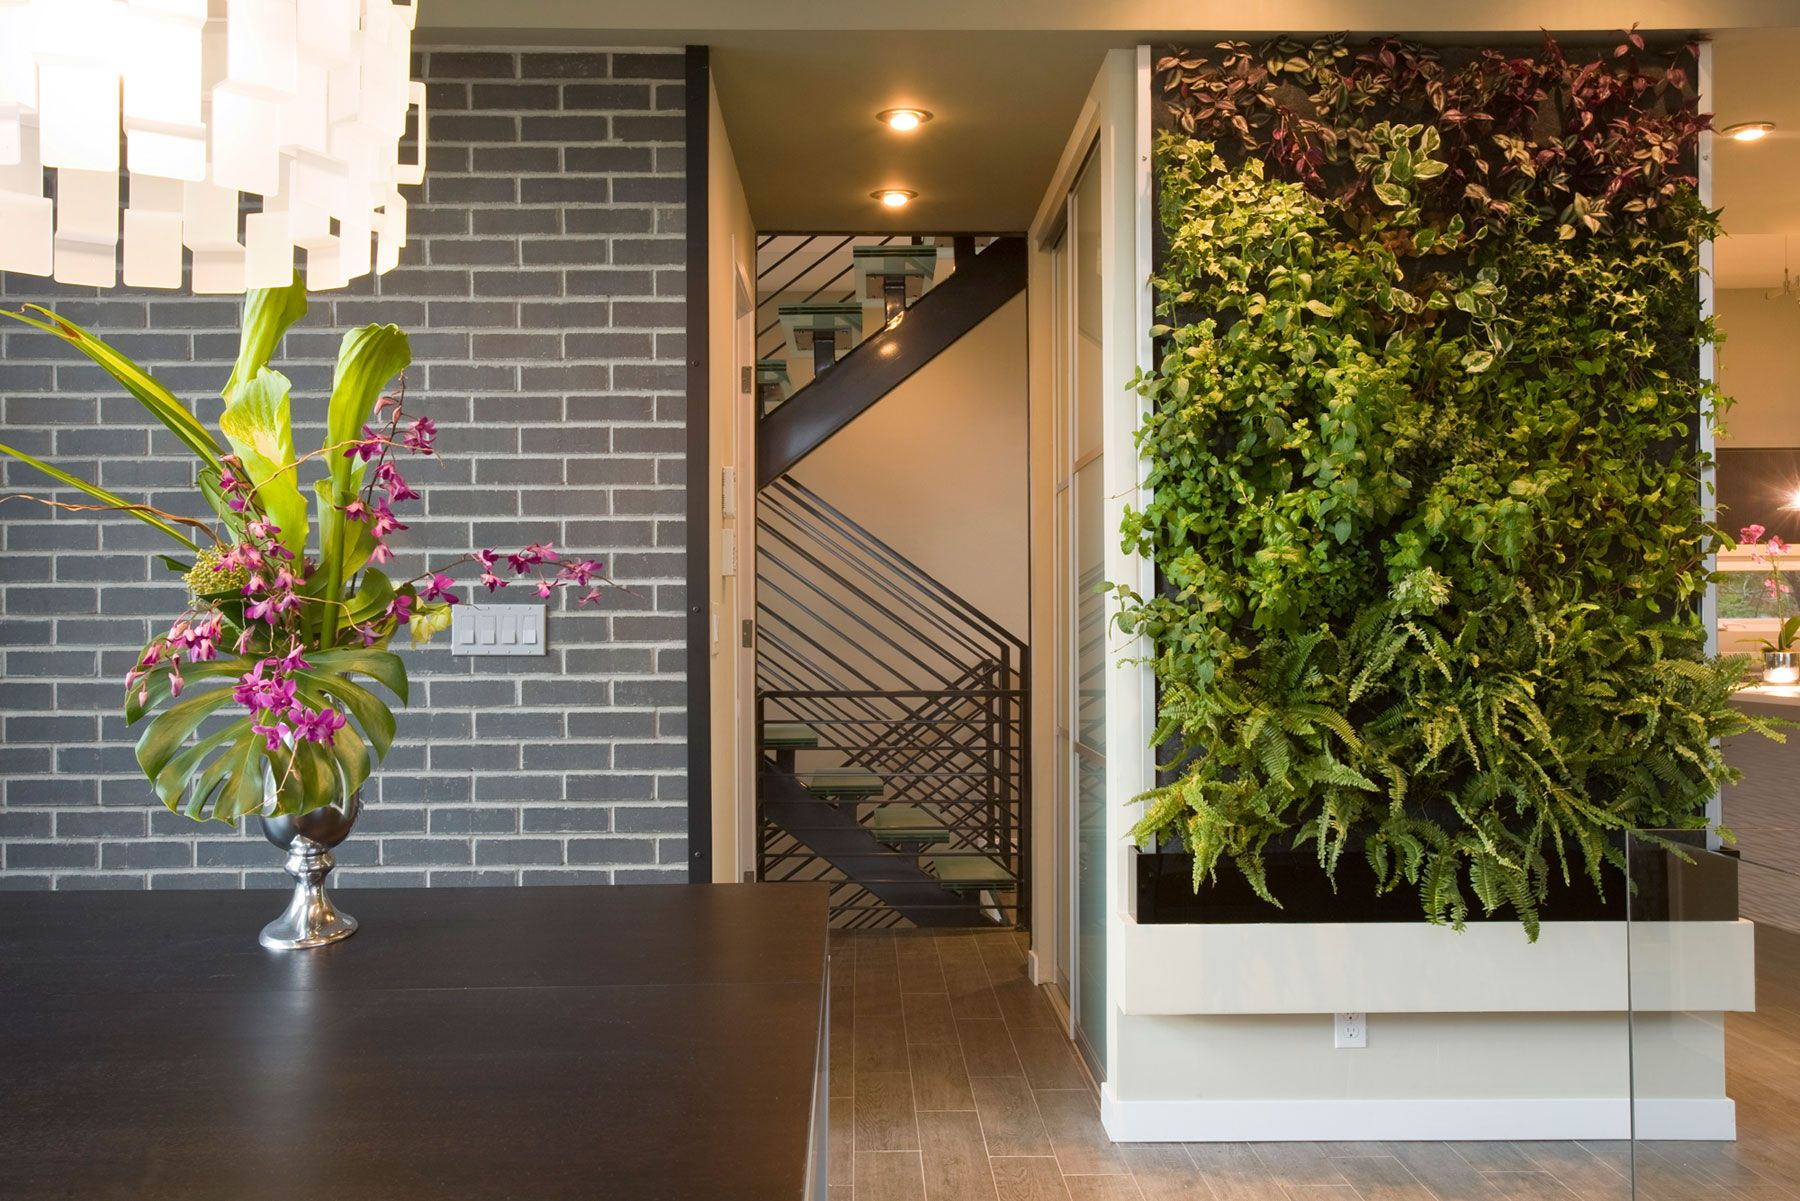 Image result for living walls in kitchen | My future DR paradise ...